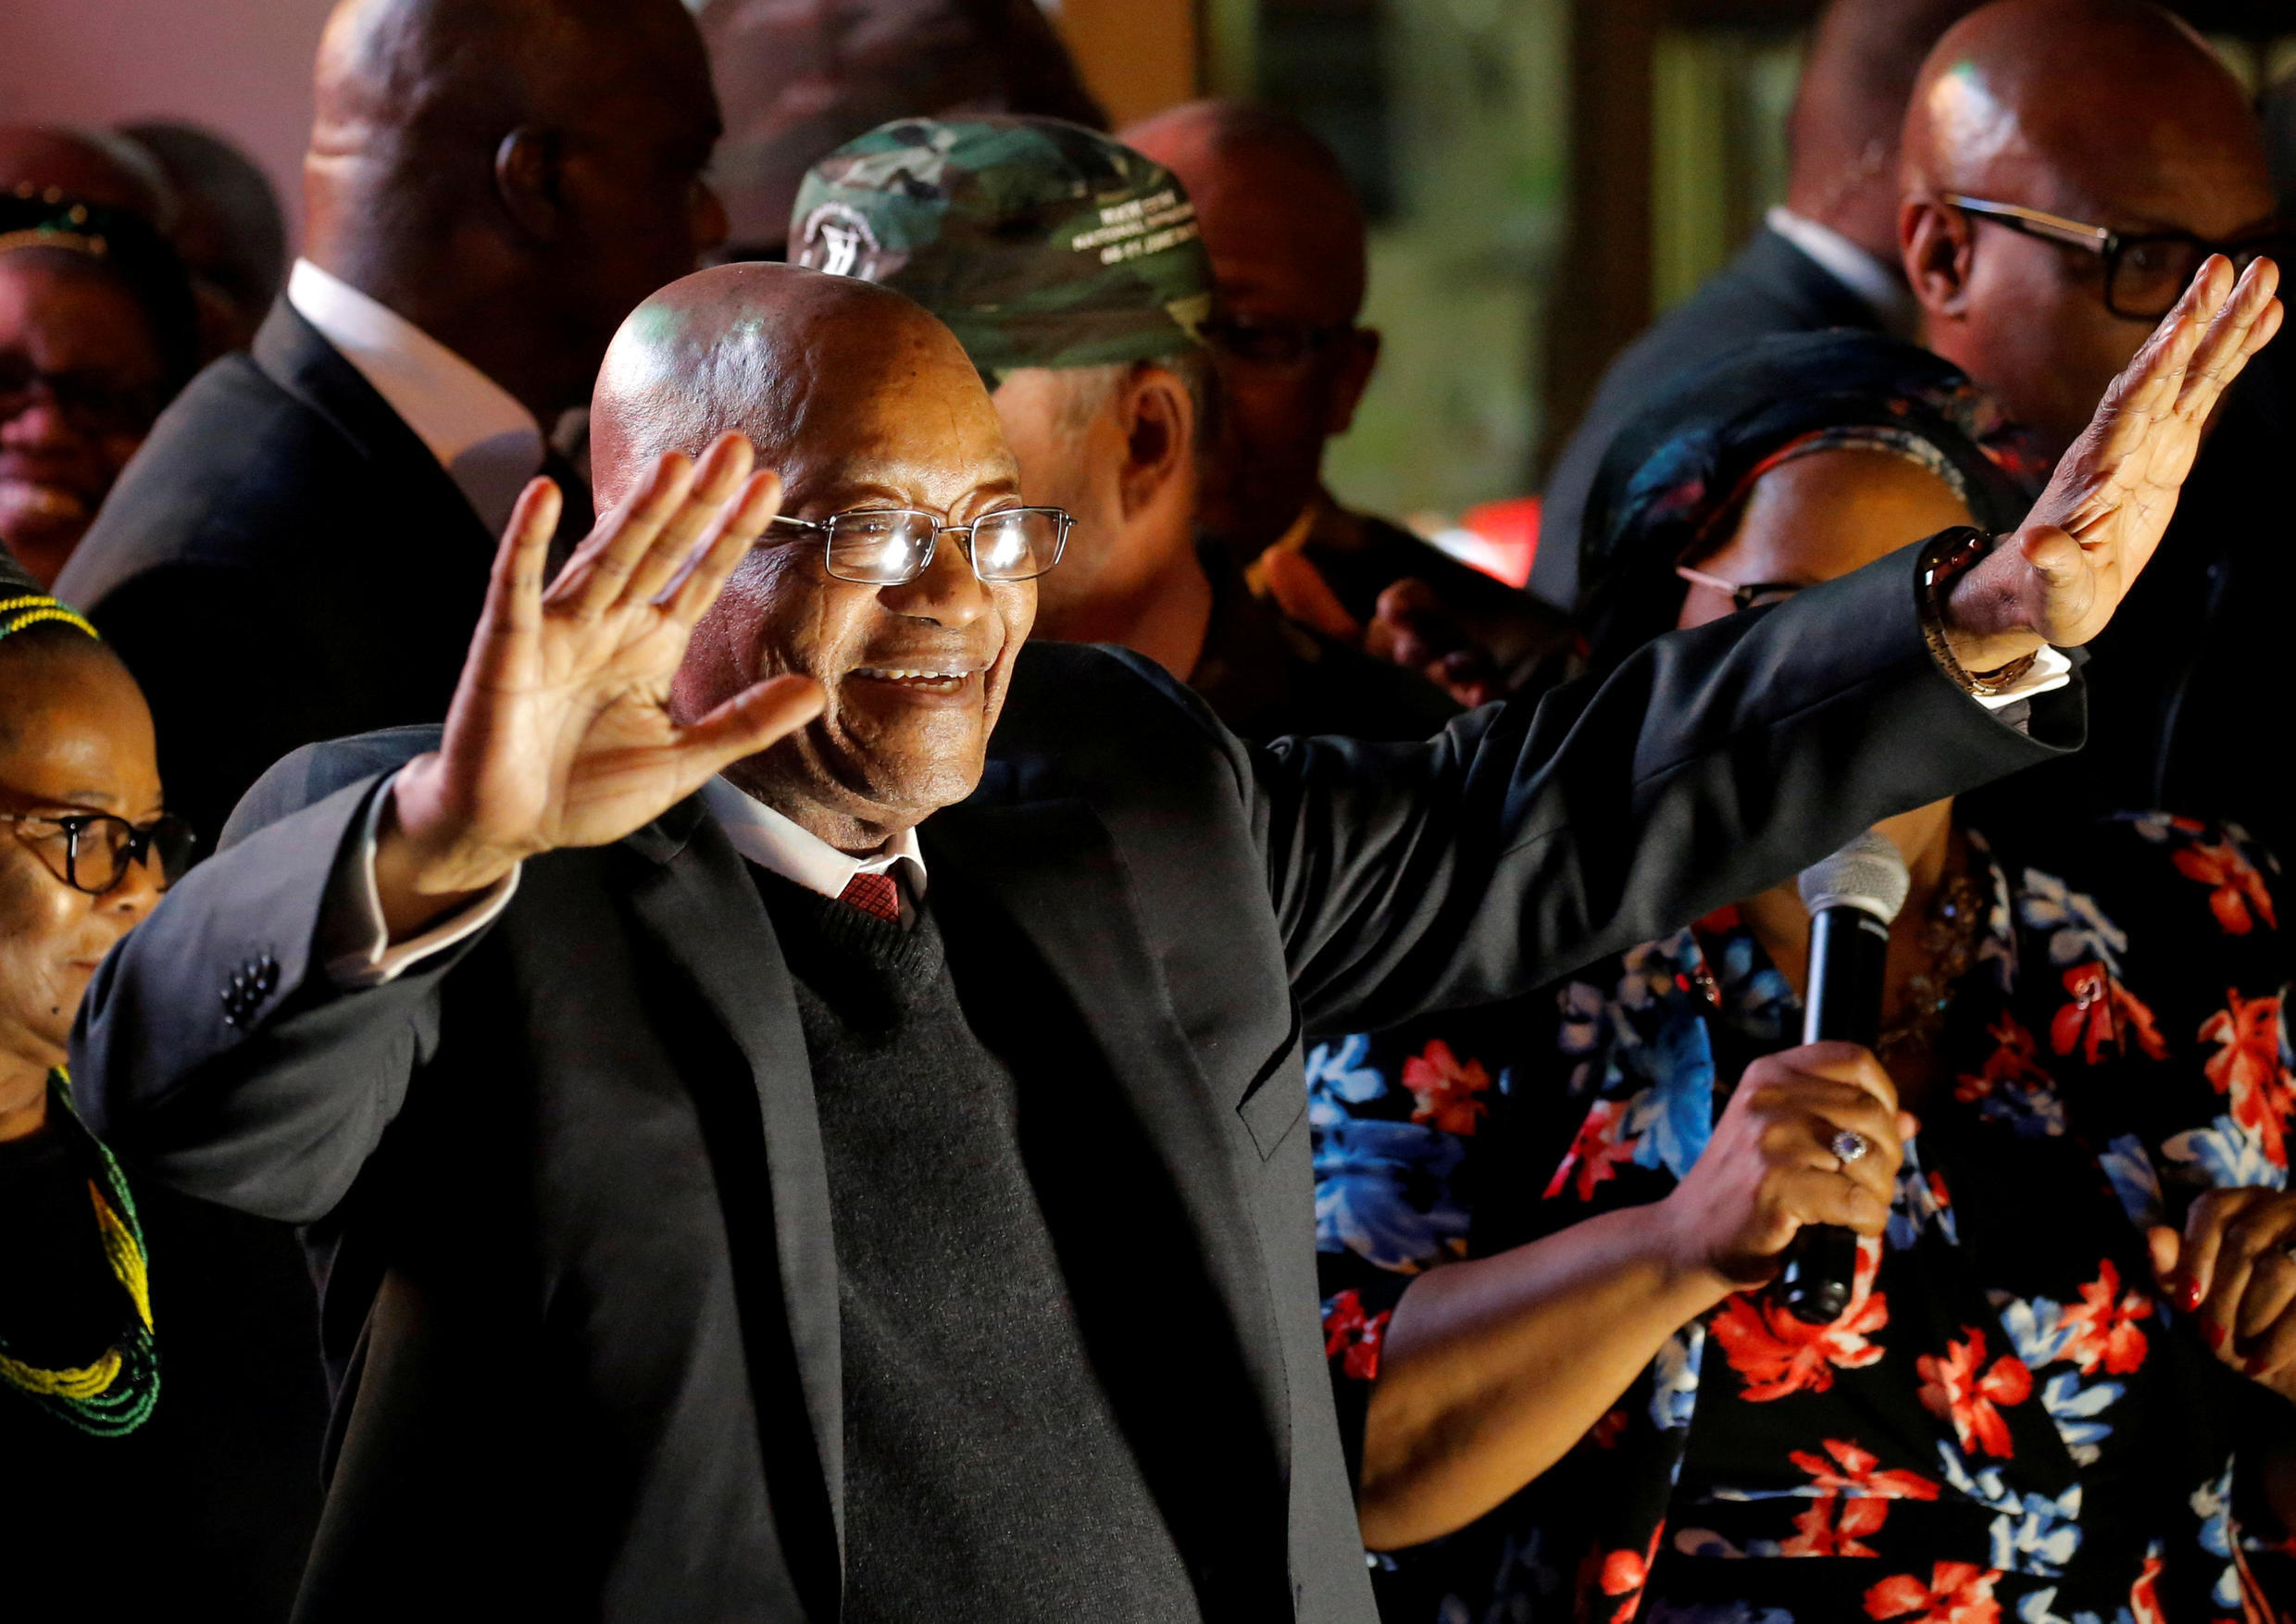 South Africa's President Jacob Zuma celebrates with his supporters after he survived a no-confidence motion in parliament in Cape Town on August 8, 2017